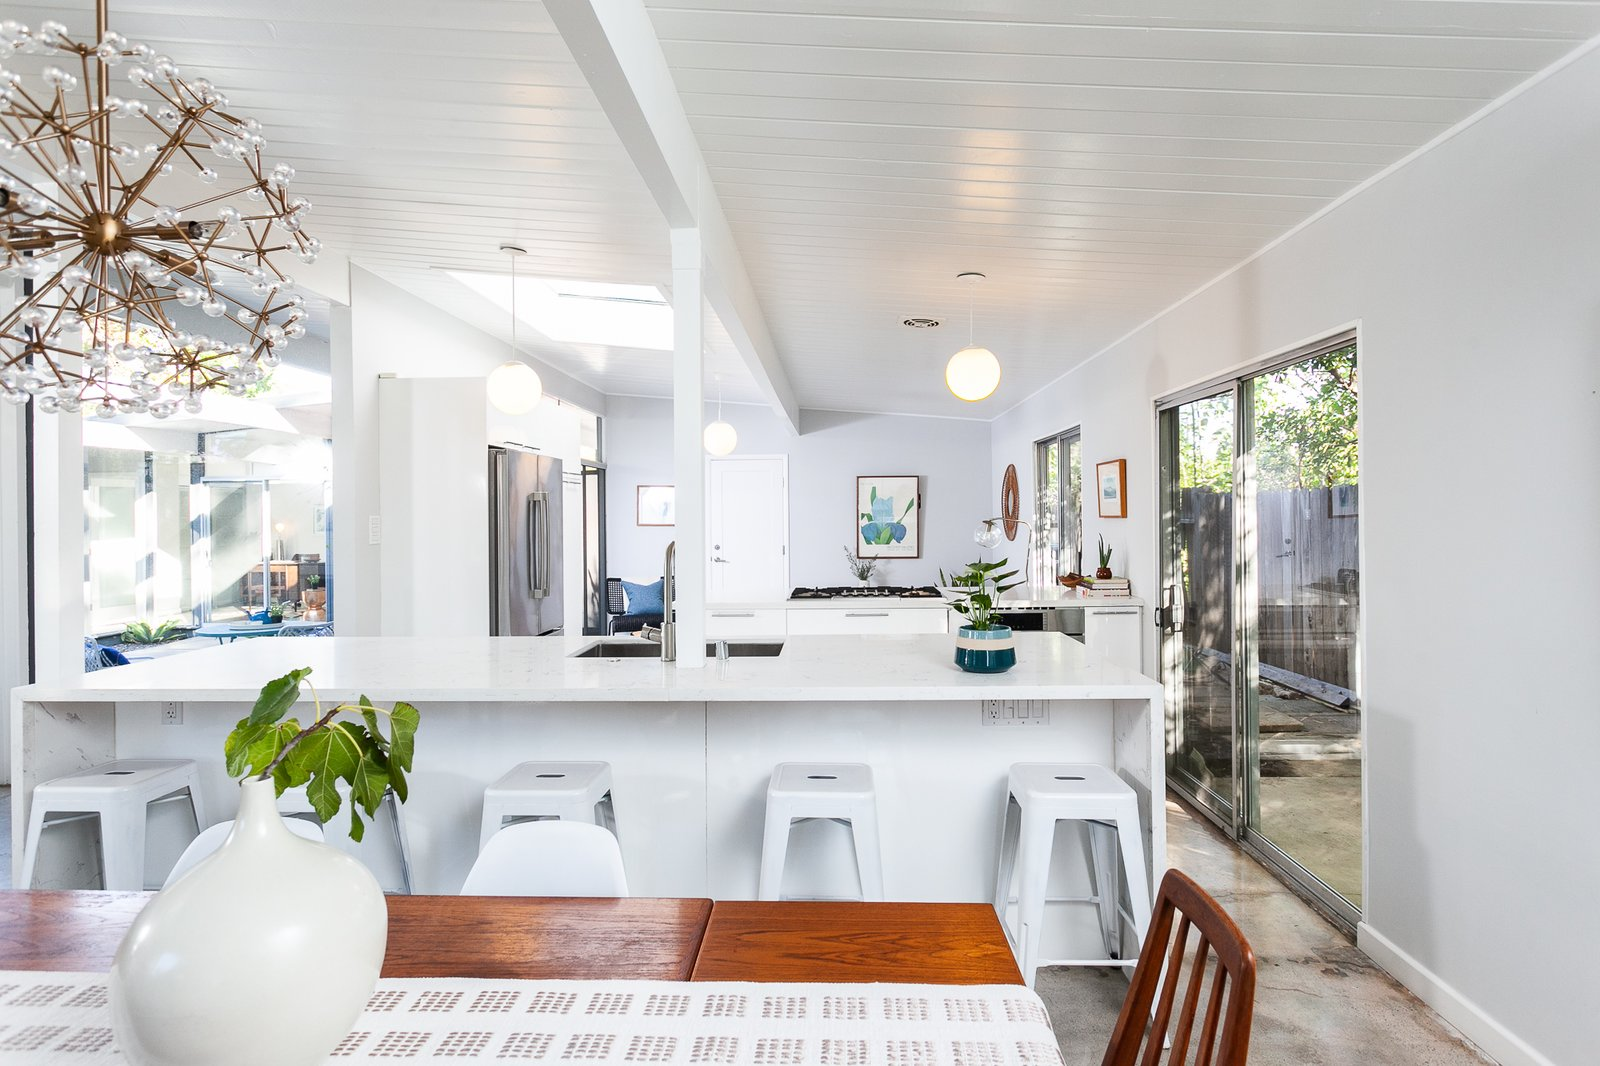 Dining, Chair, Table, Stools, Concrete, Pendant, and Bar The kitchen features period-appropriate globe pendant lighting.  Best Kitchen Concrete Undermount Refrigerator White Photos from This Light-Filled Orange County Eichler Home Just Listed For $1.1M